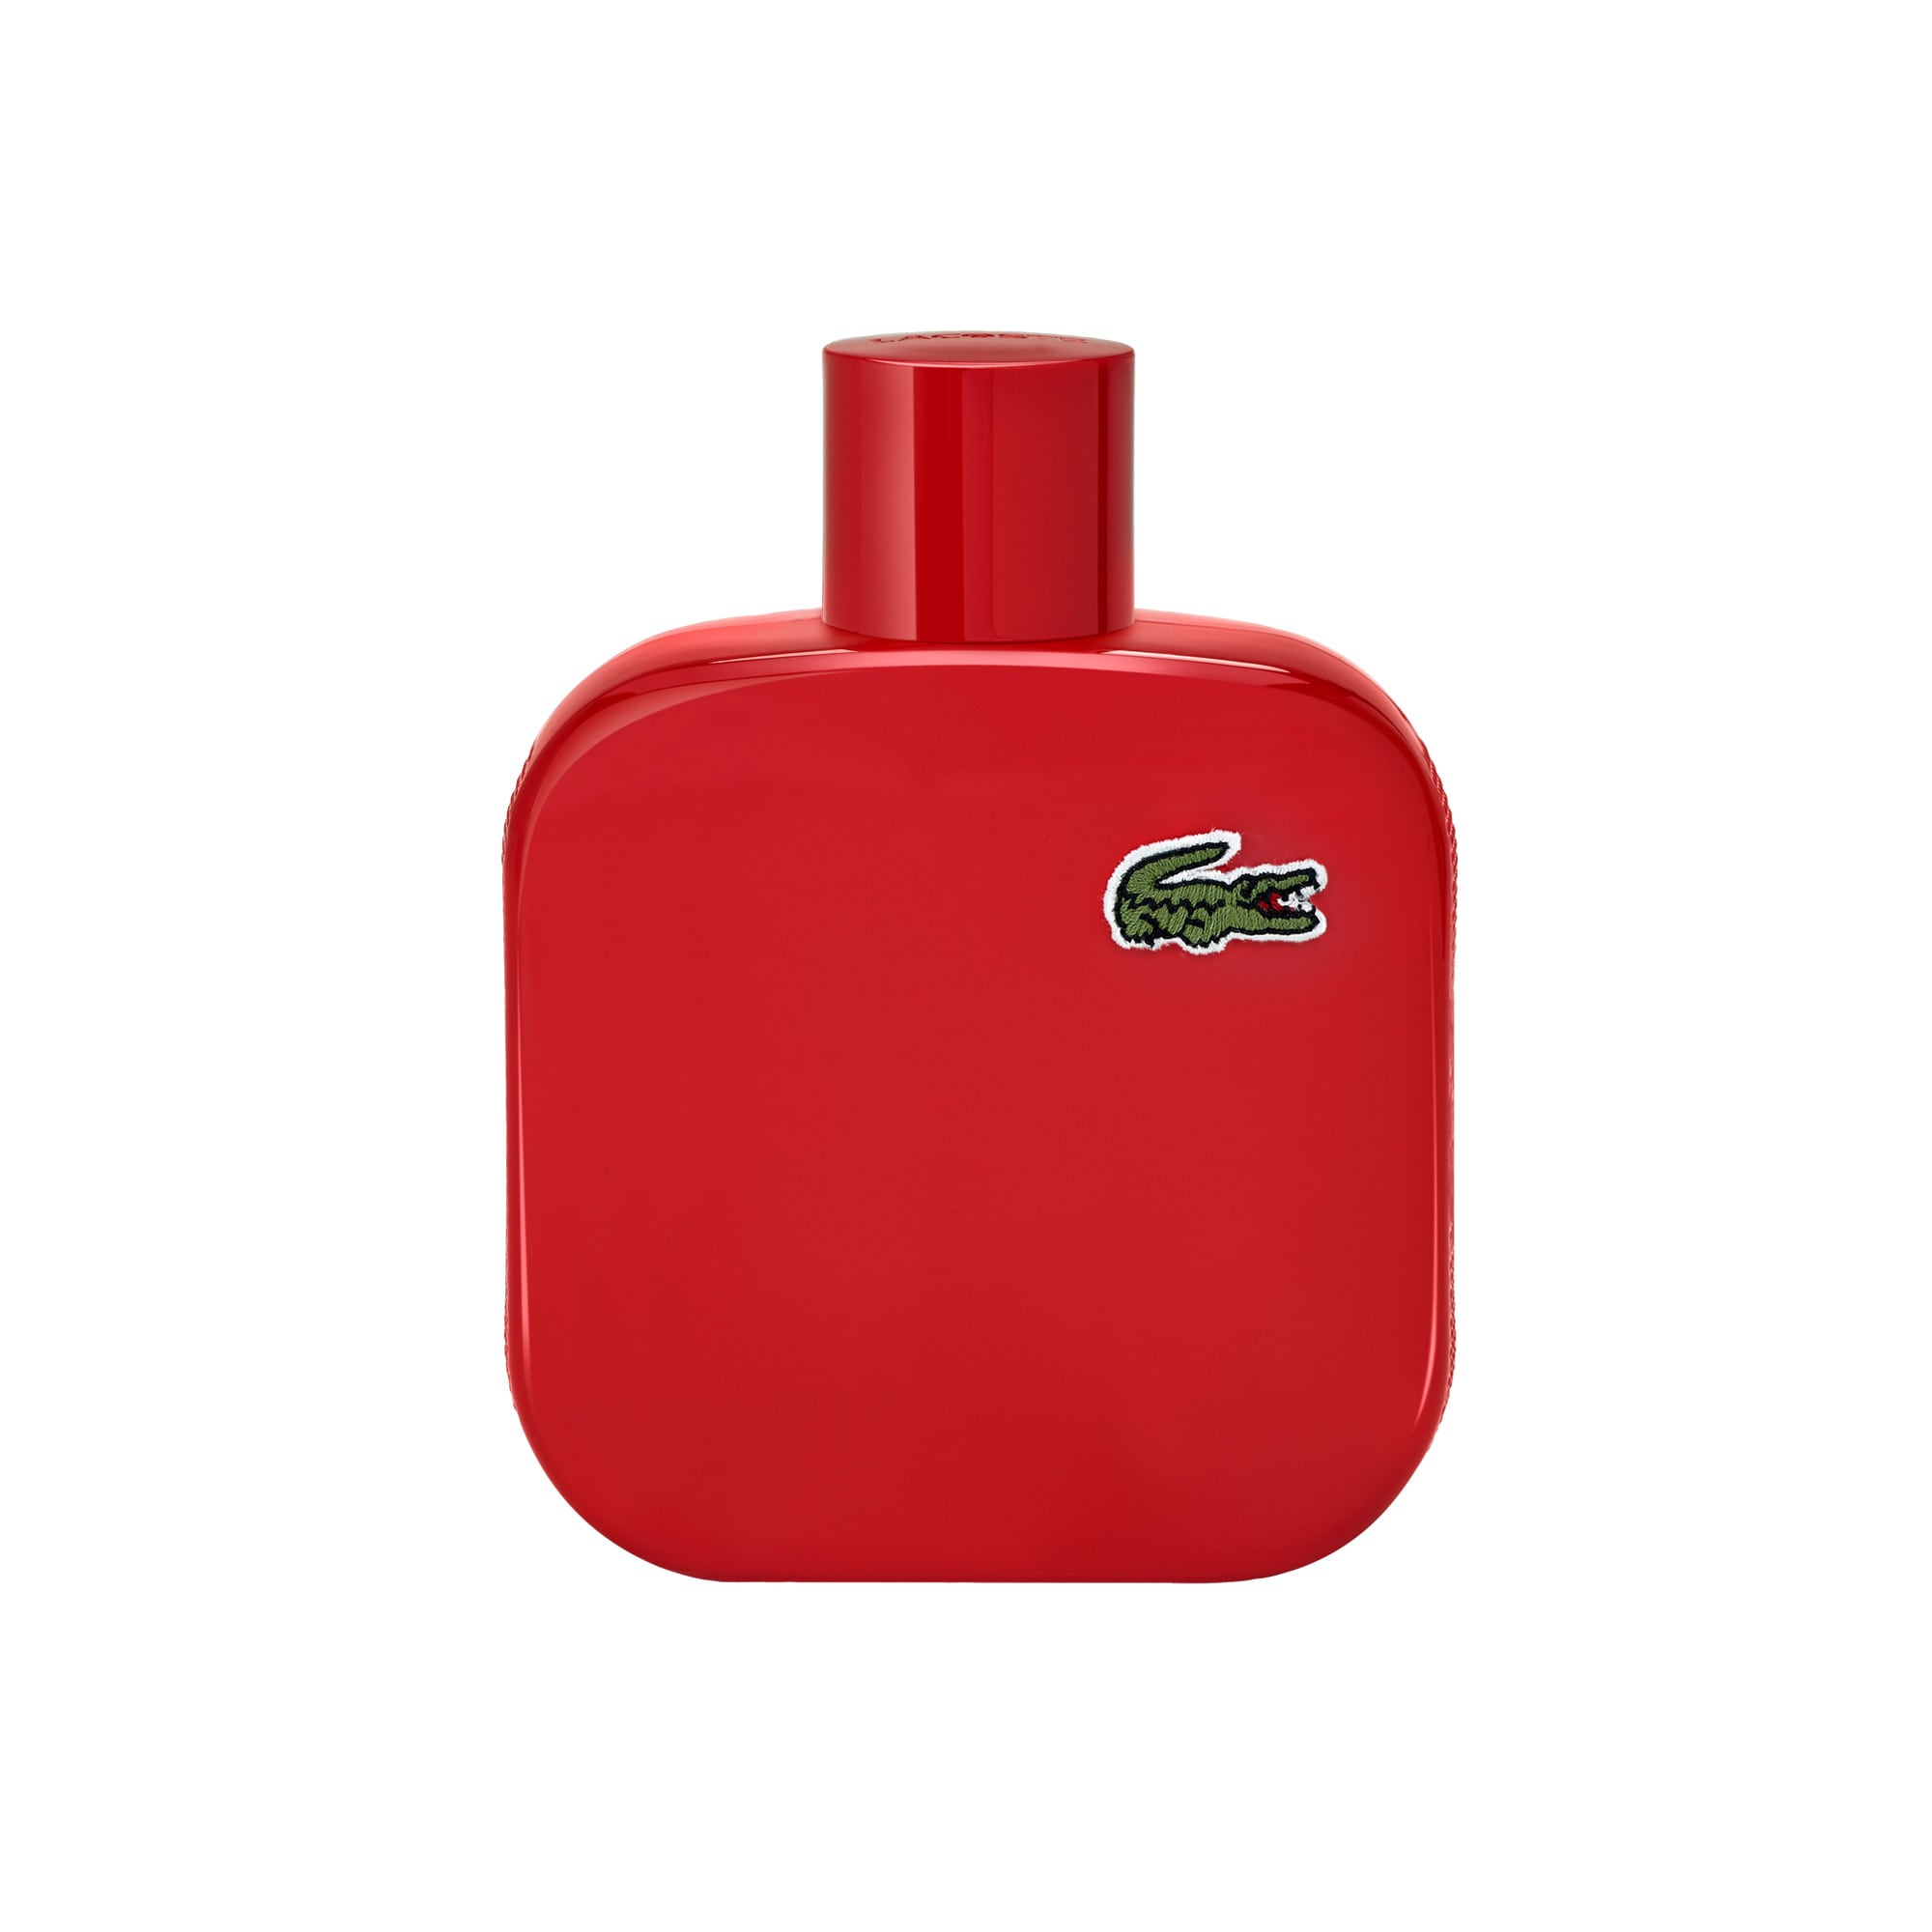 Eau de Lacoste L.12.12 Red Eau de Toilette 100 ml